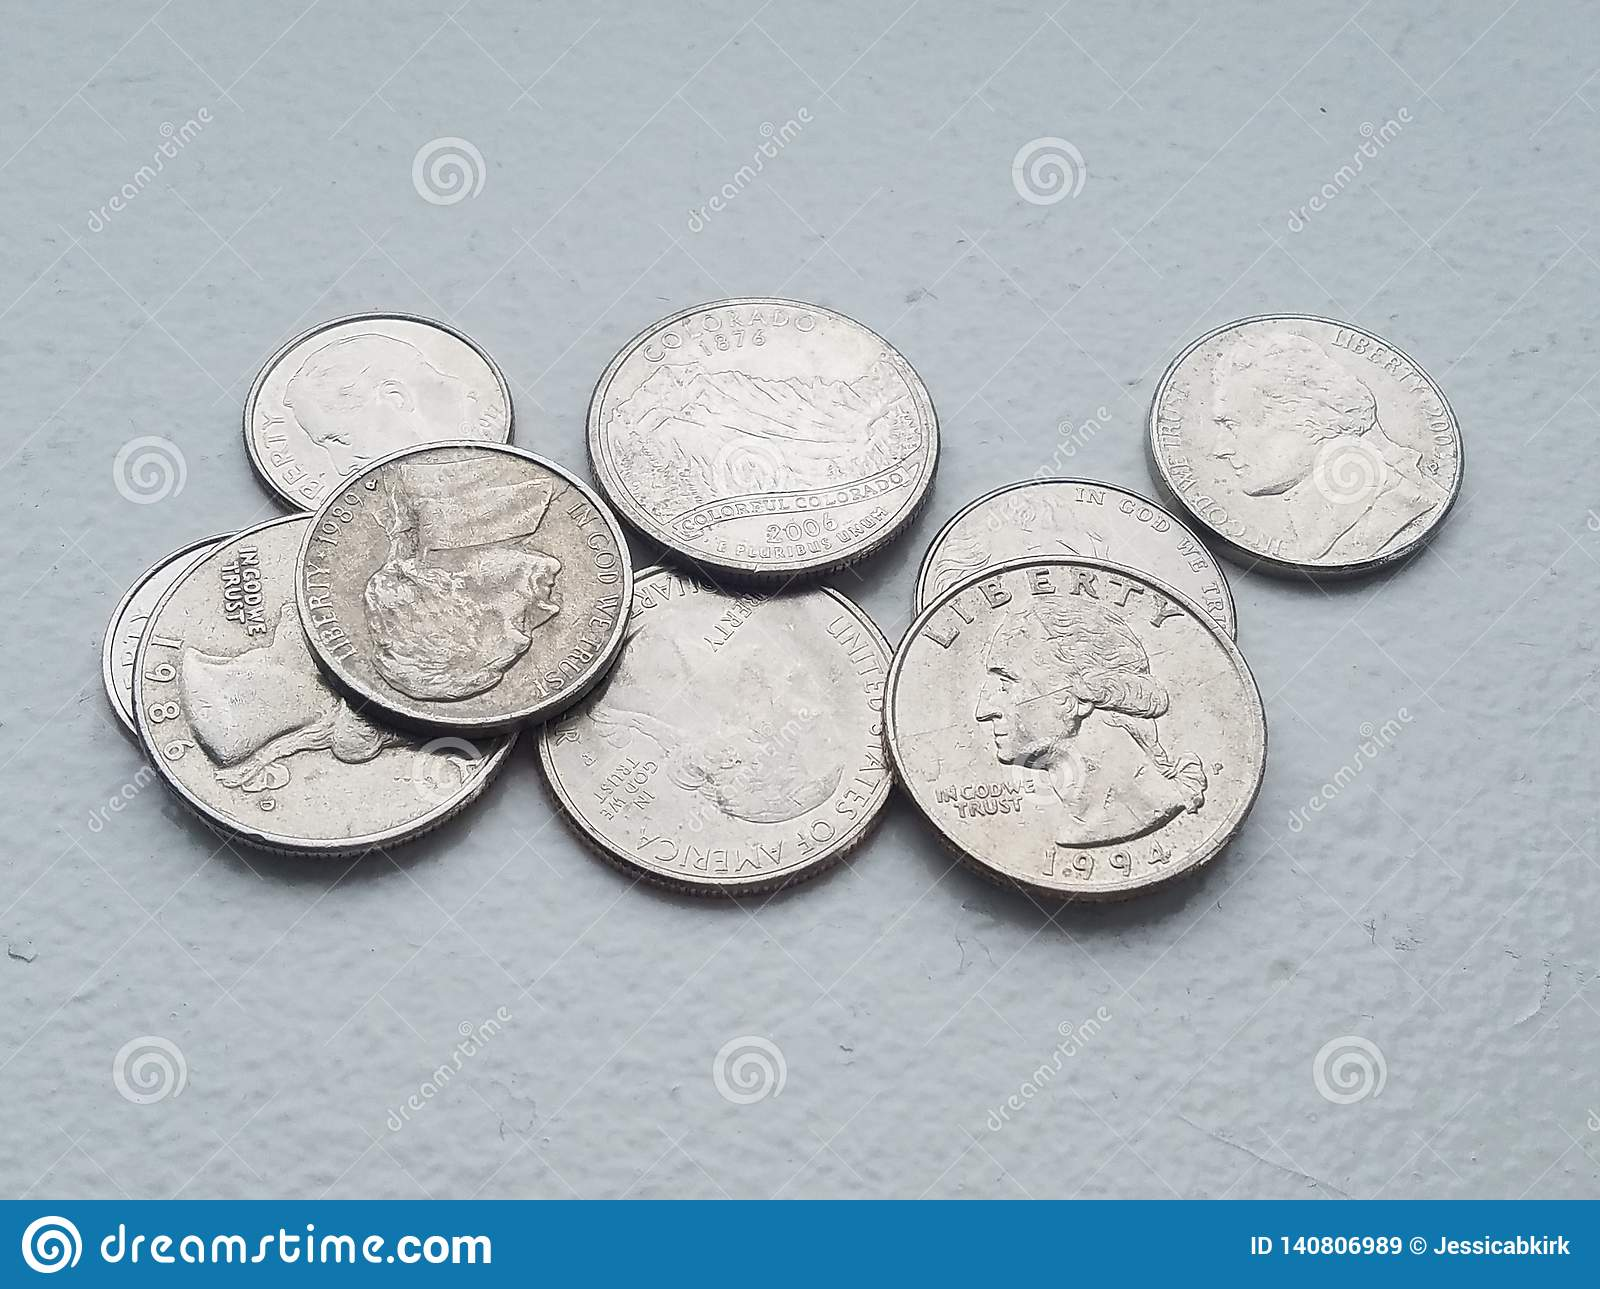 Pile of US coins currency Liberty dime and quarters from directly above